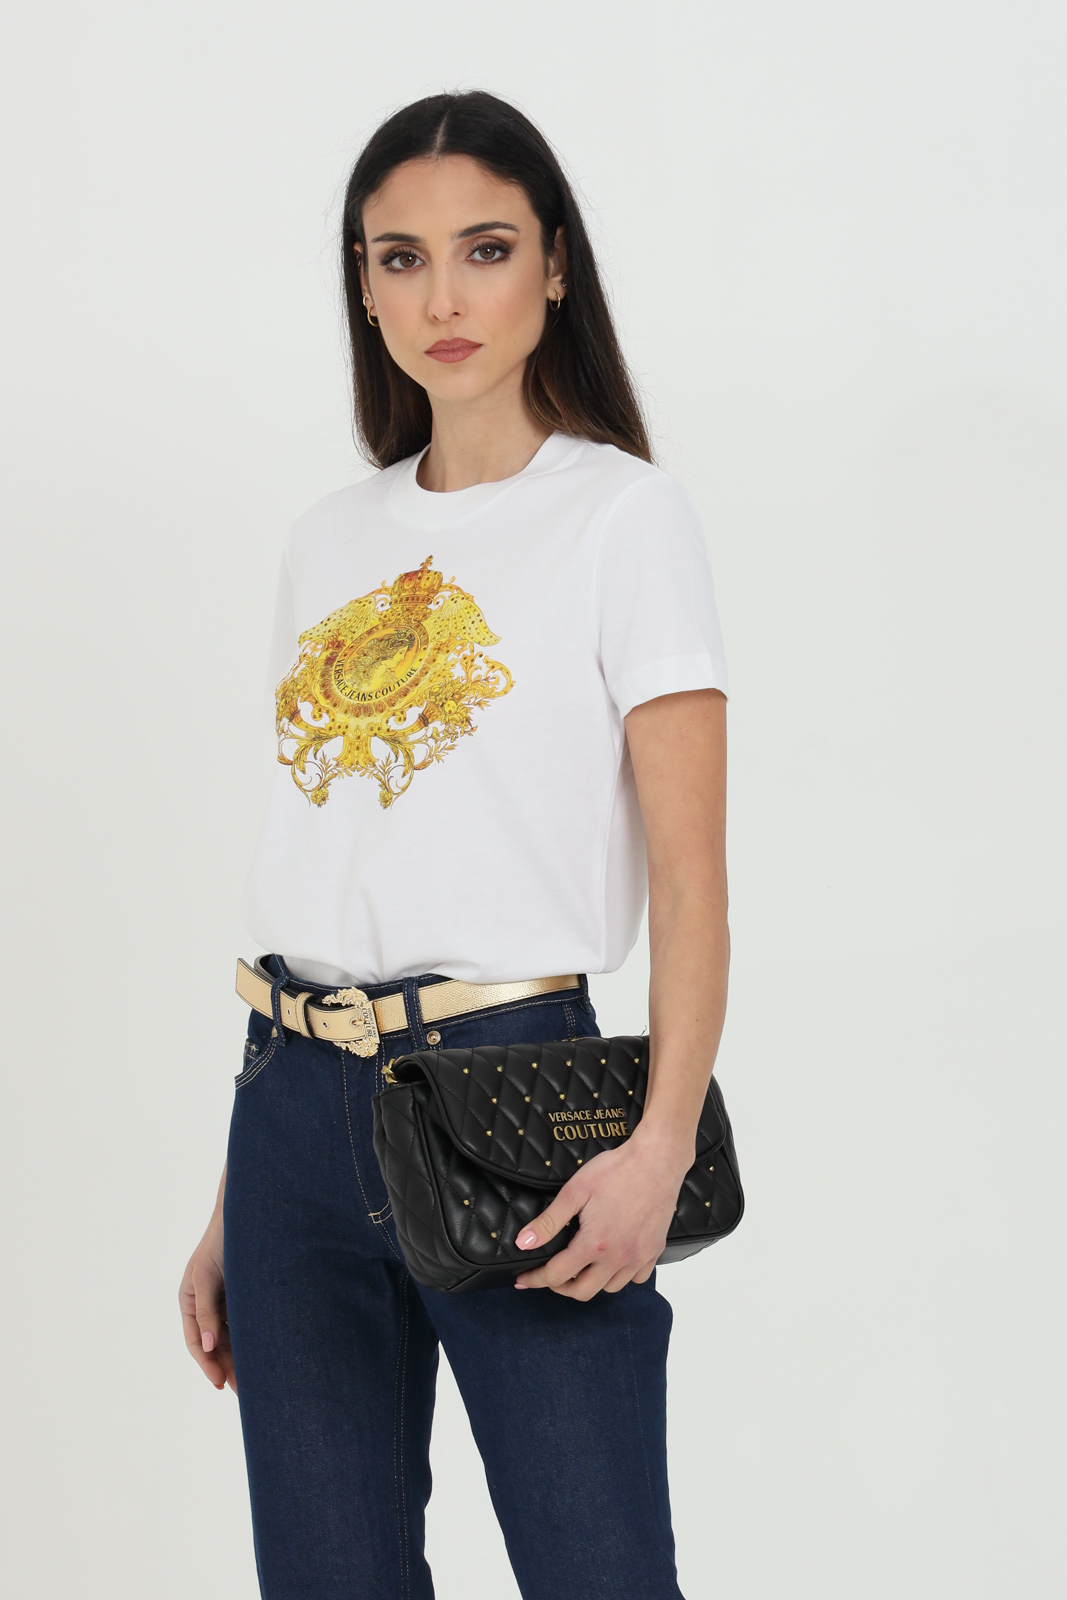 Versace Jeans Couture T-SHIRTS AND RHINESTONE WITH BAROQUE PRINT